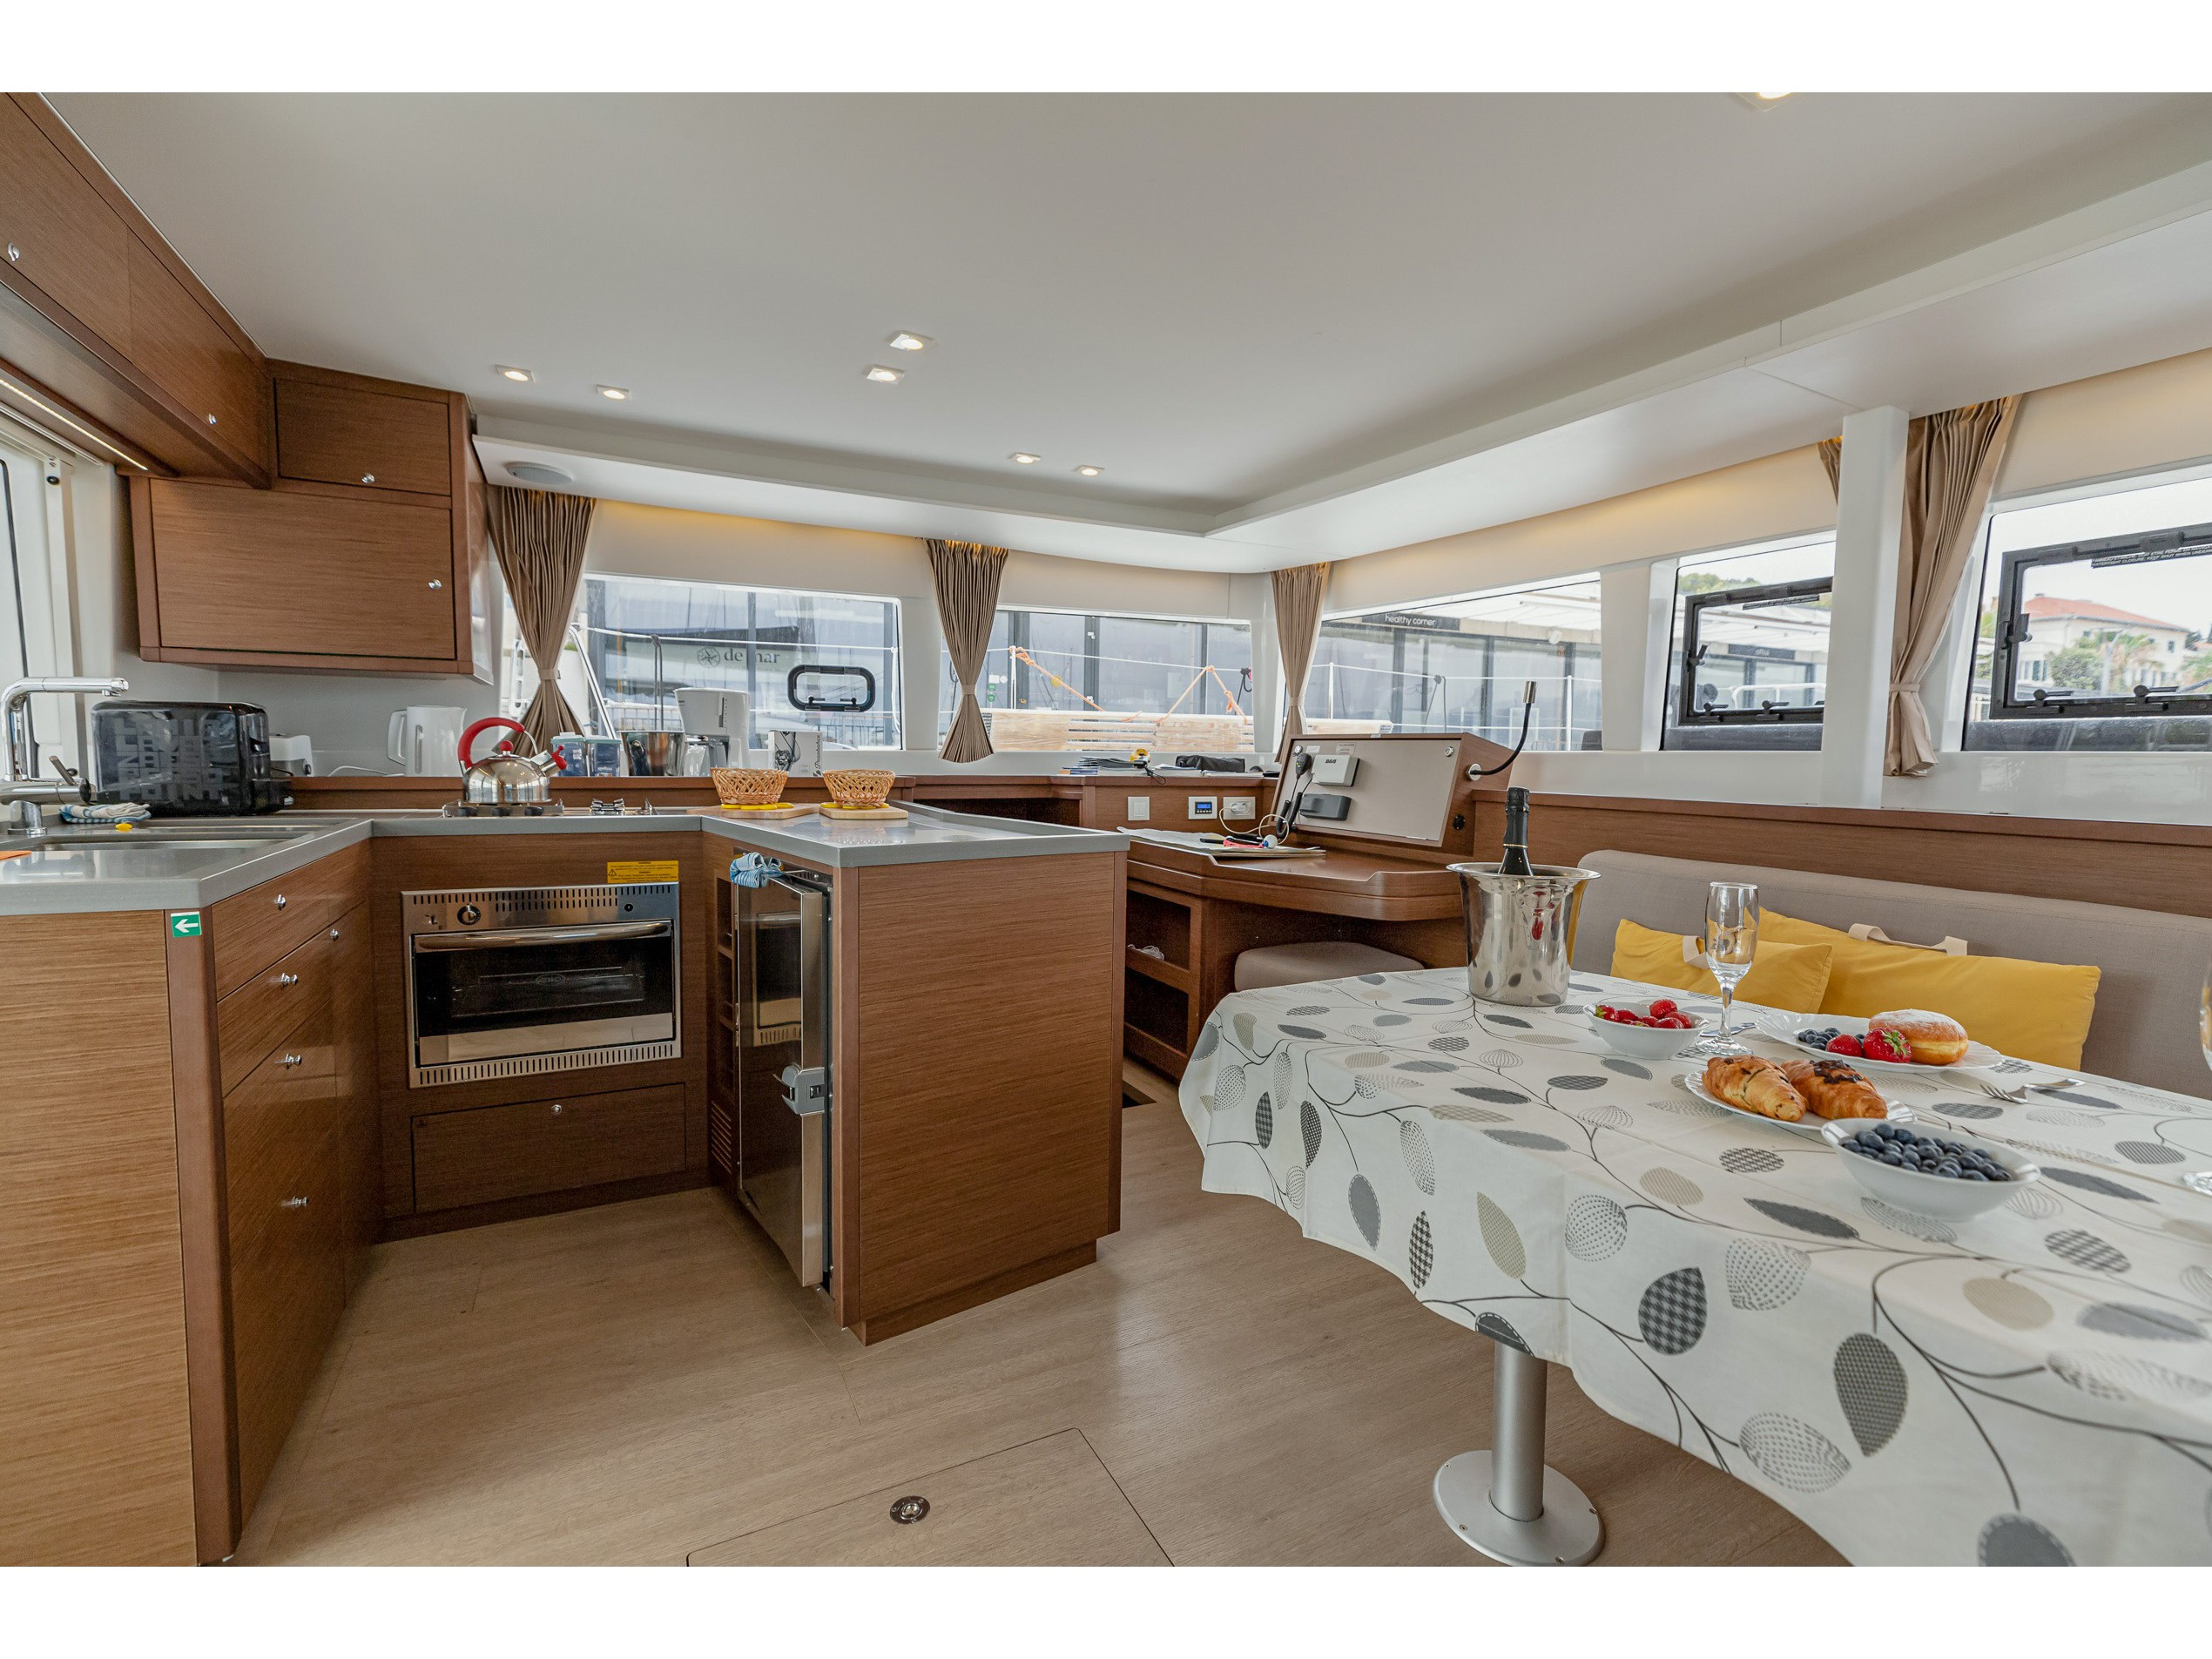 Lagoon 450 Sport (2018) equipped with generator, A (MOBY DICK) Interior image - 19